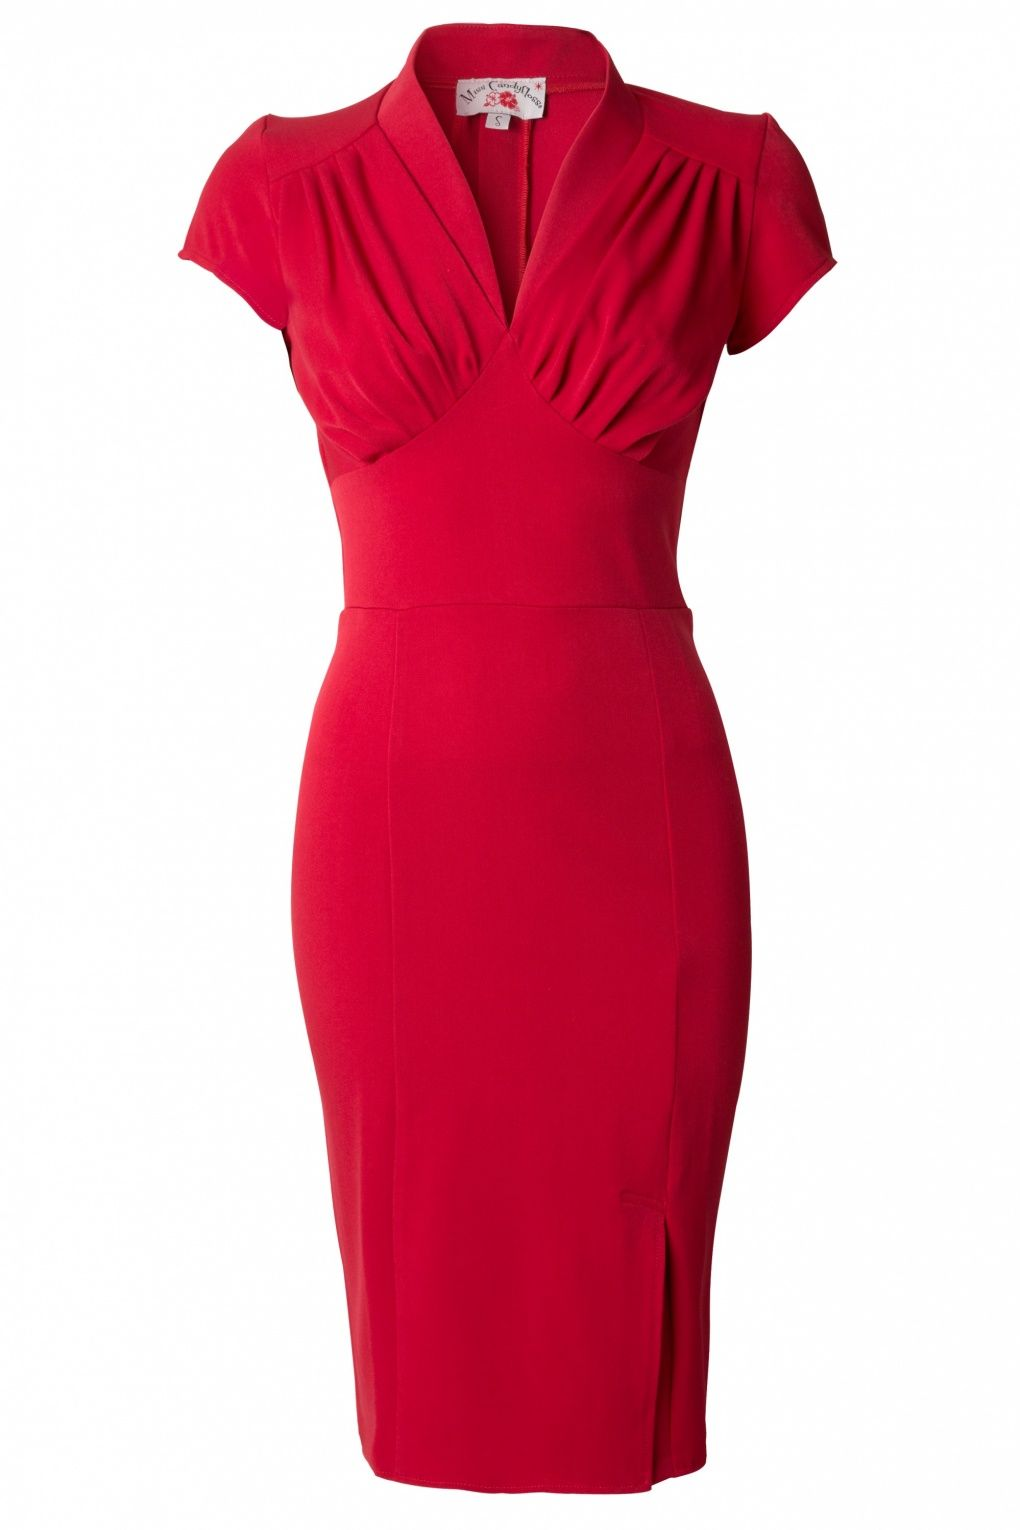 Rode Pencil Jurk.50s Mavis Red Pencil Dress Model Jurken Vintage Jurken En Jurkjes